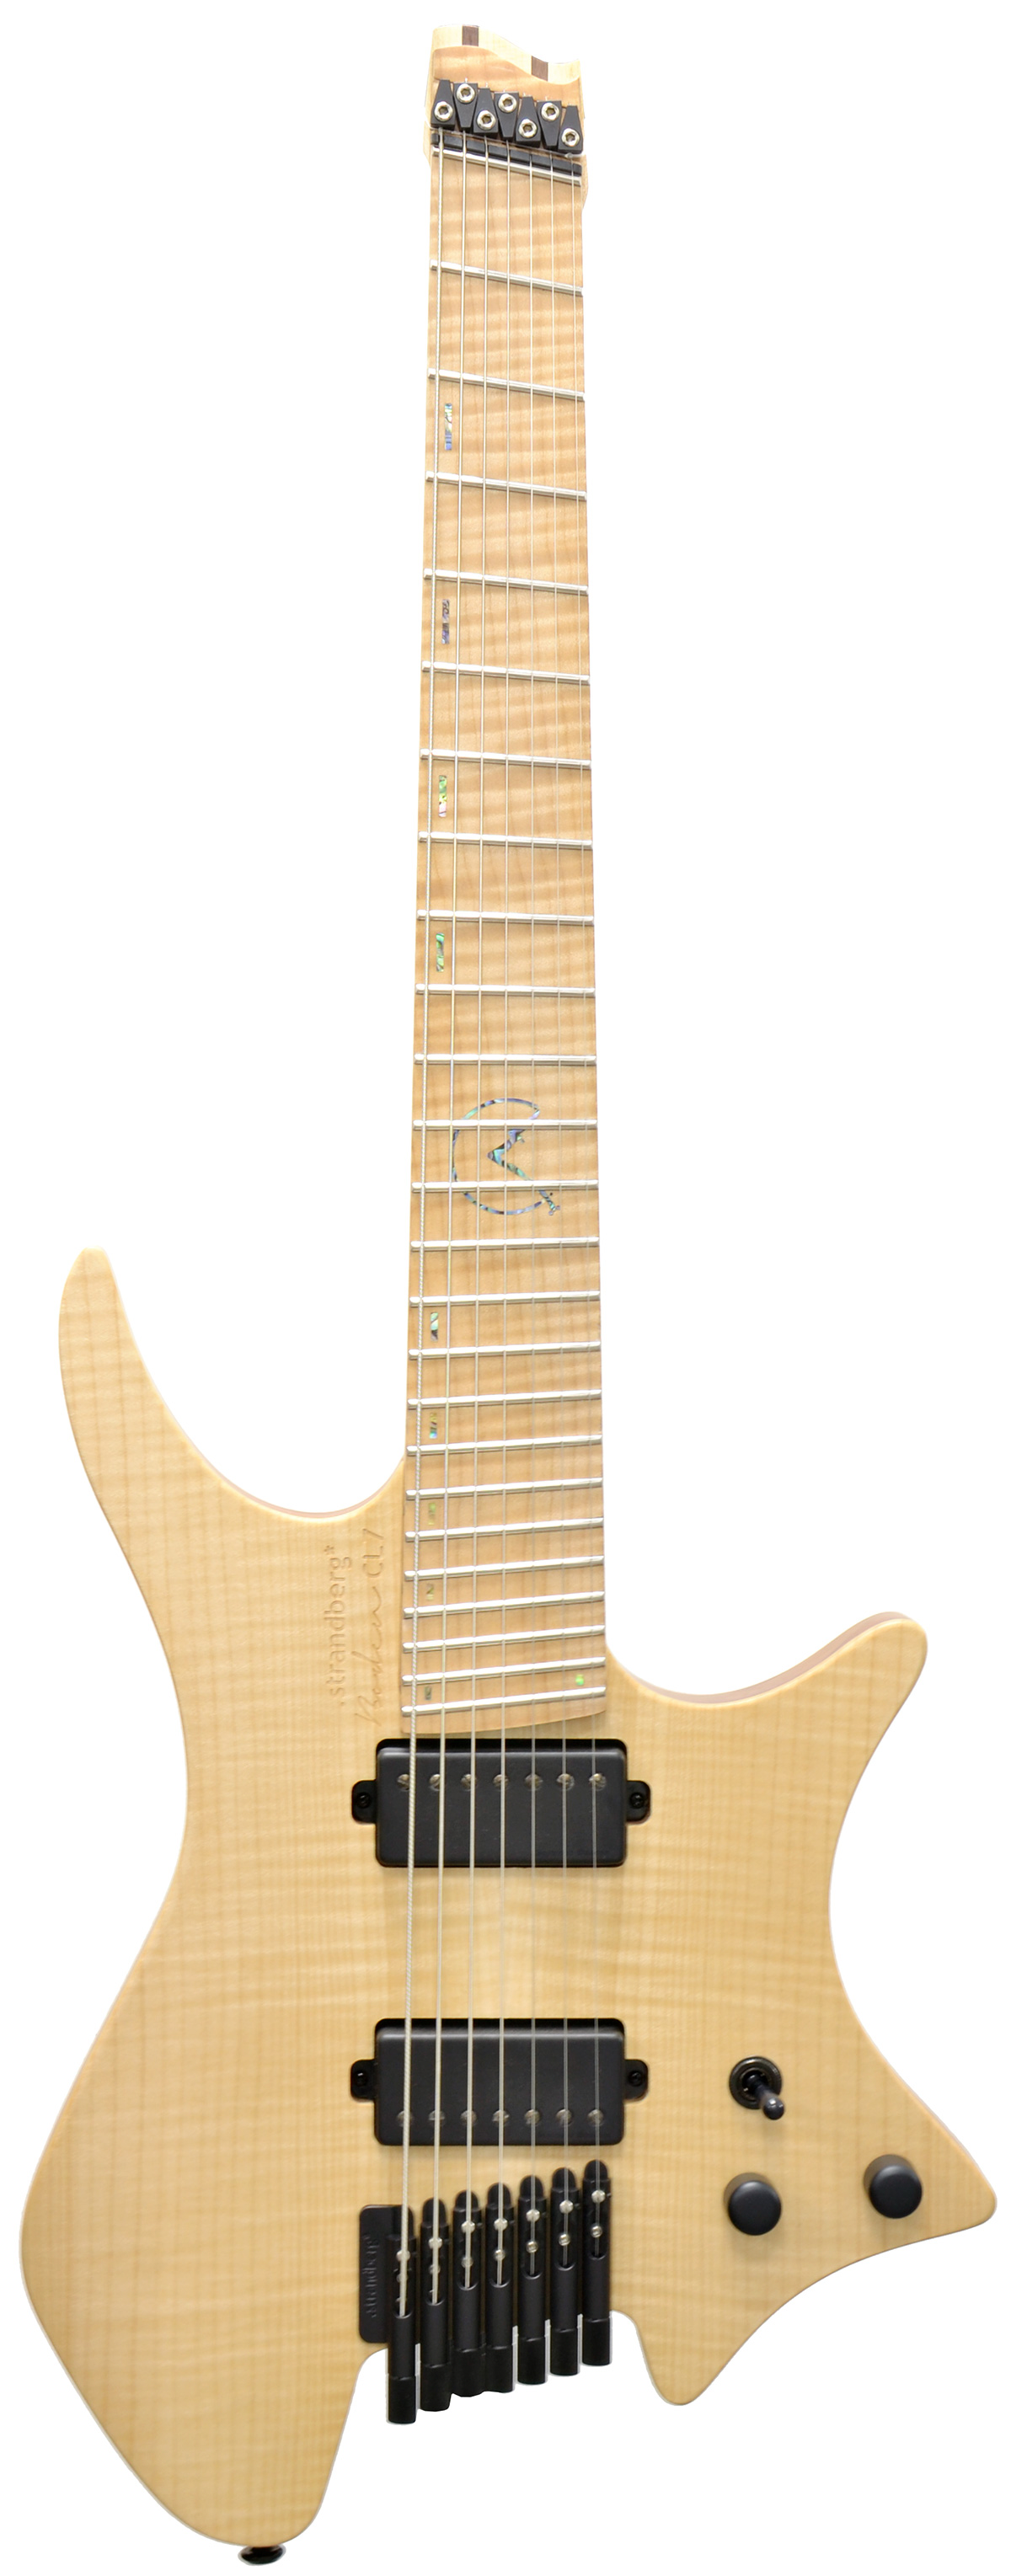 Strandberg boden cl 7 natural maple for Strandberg boden 7